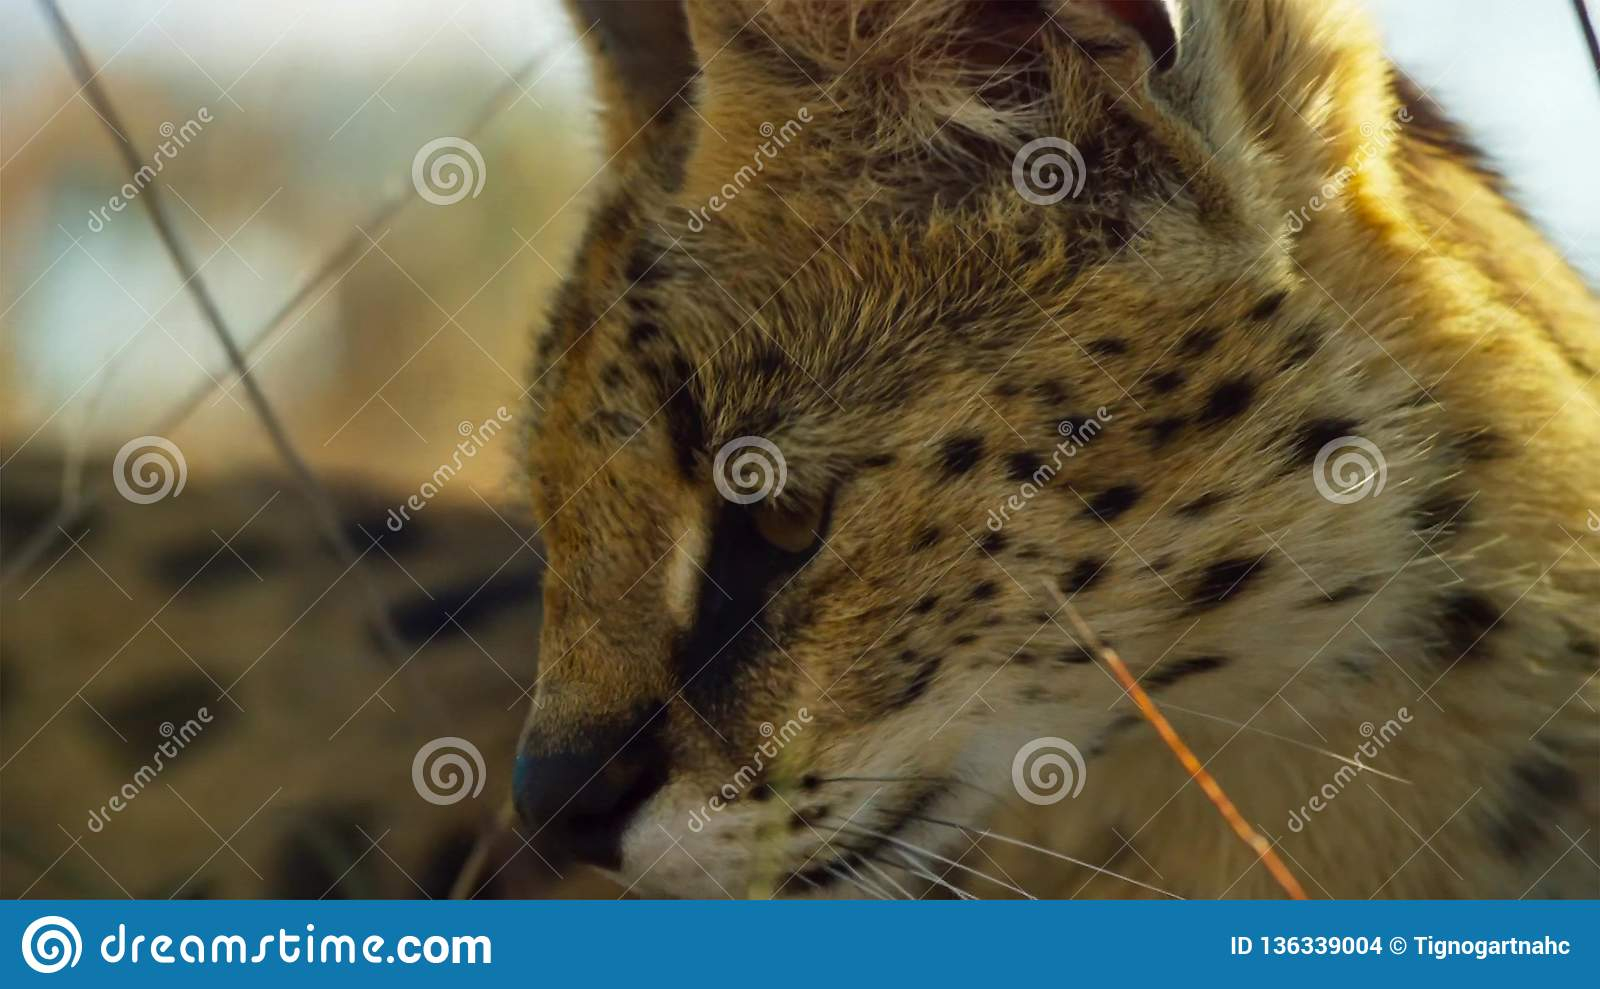 Close up a serval cat with spotted like a cheetah and extra long legs, Savanna, Africa